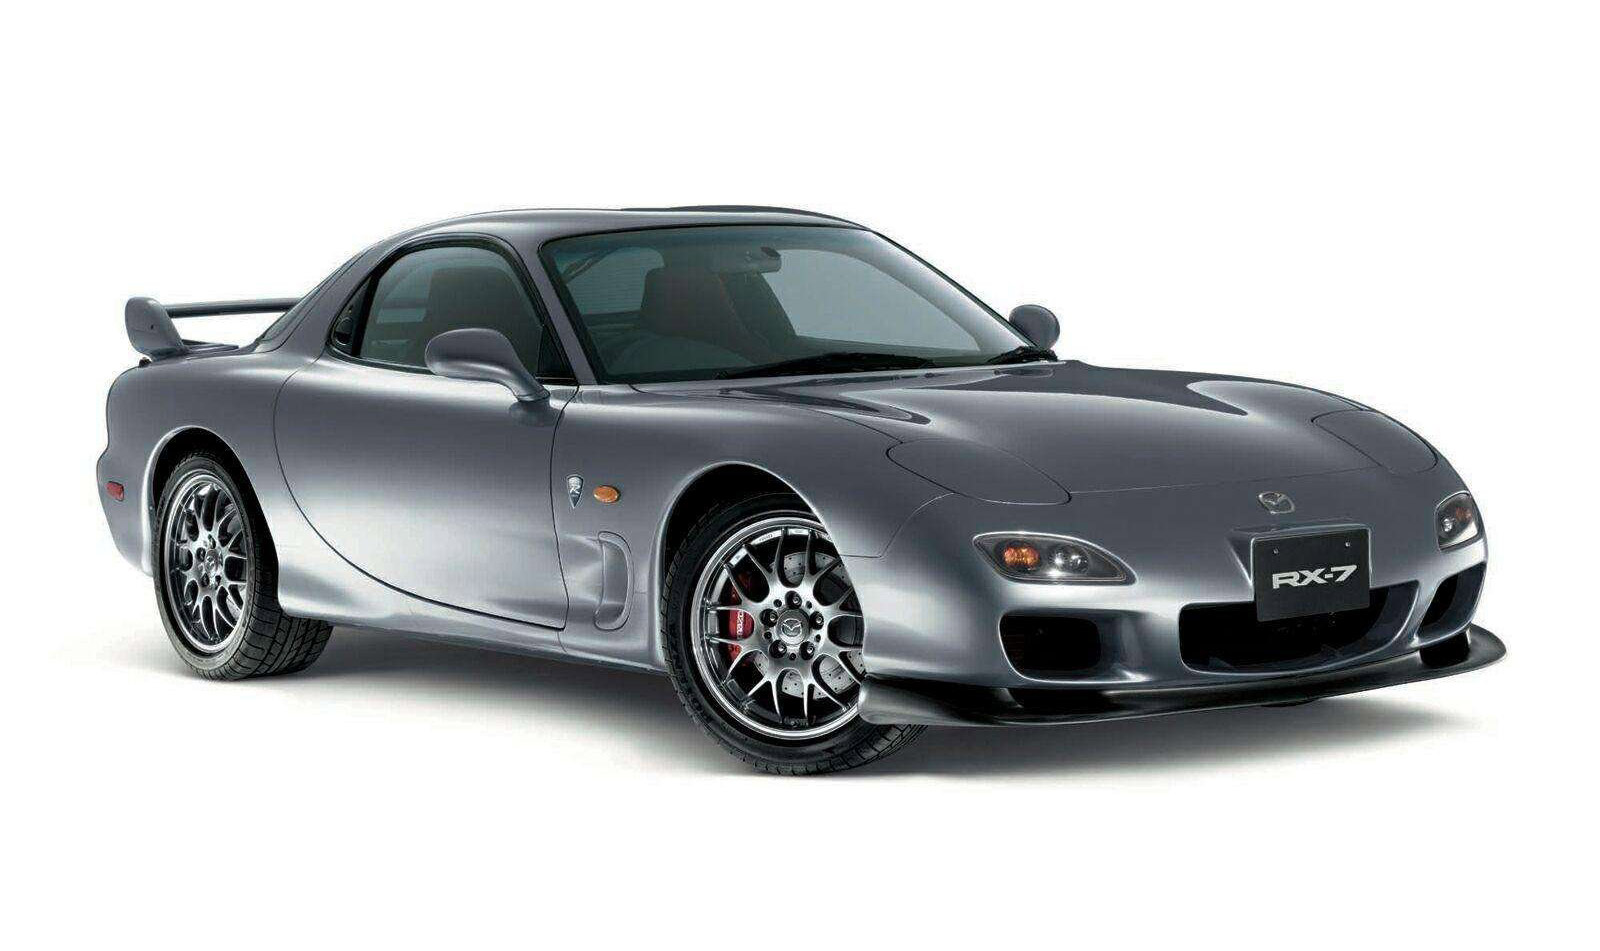 40 The 2020 Mazda RX7 New Concept